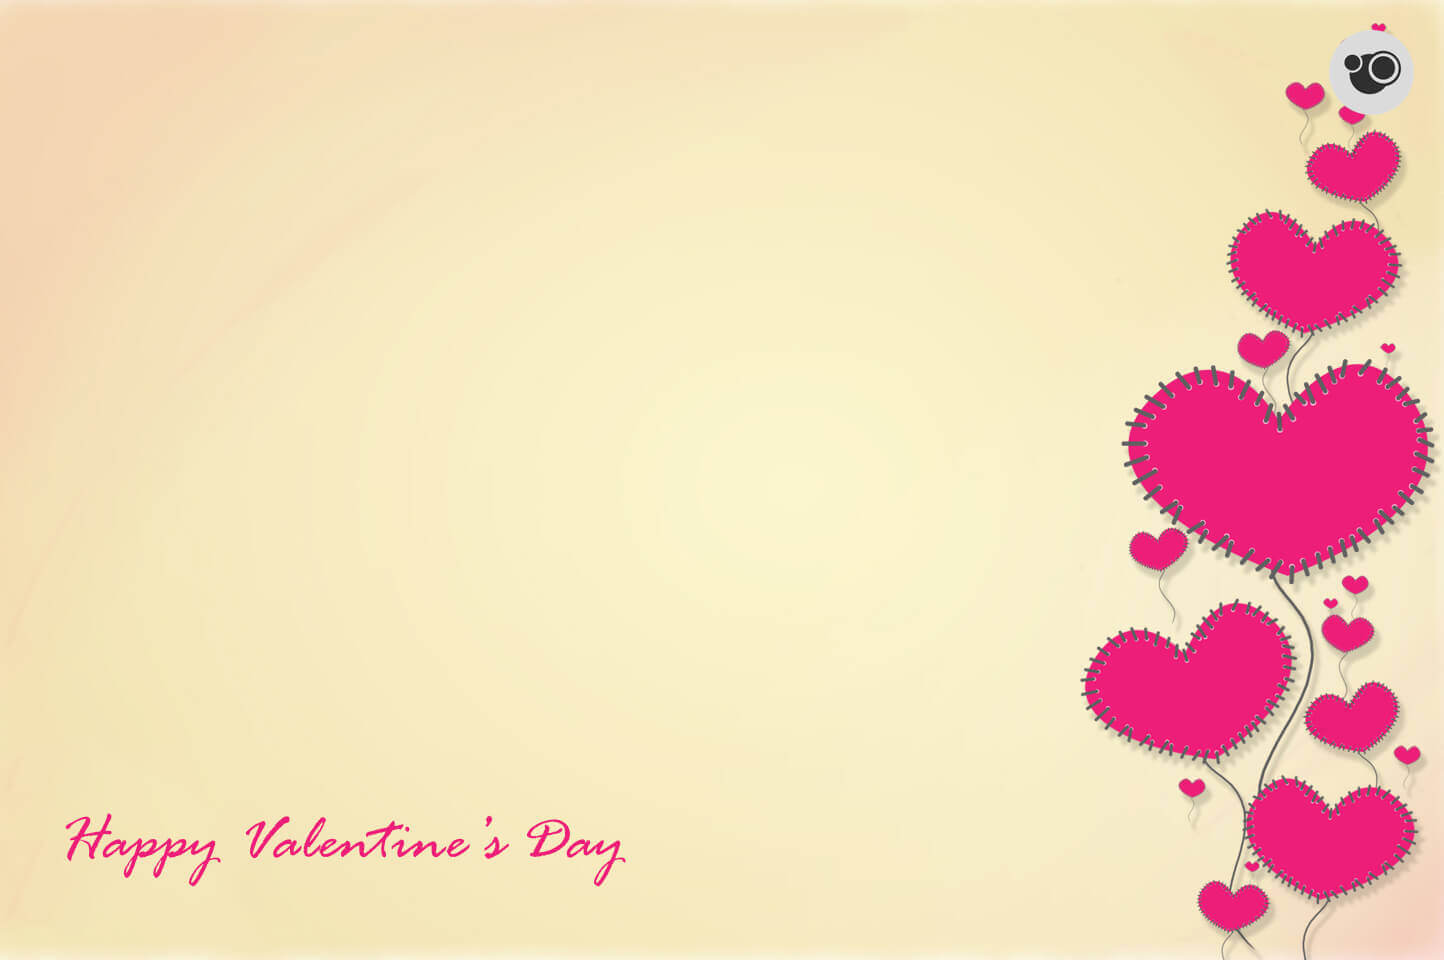 Light Color Valentine Day Hd Wallpaper Download Free - Happy Valentine Day 2019 Background , HD Wallpaper & Backgrounds